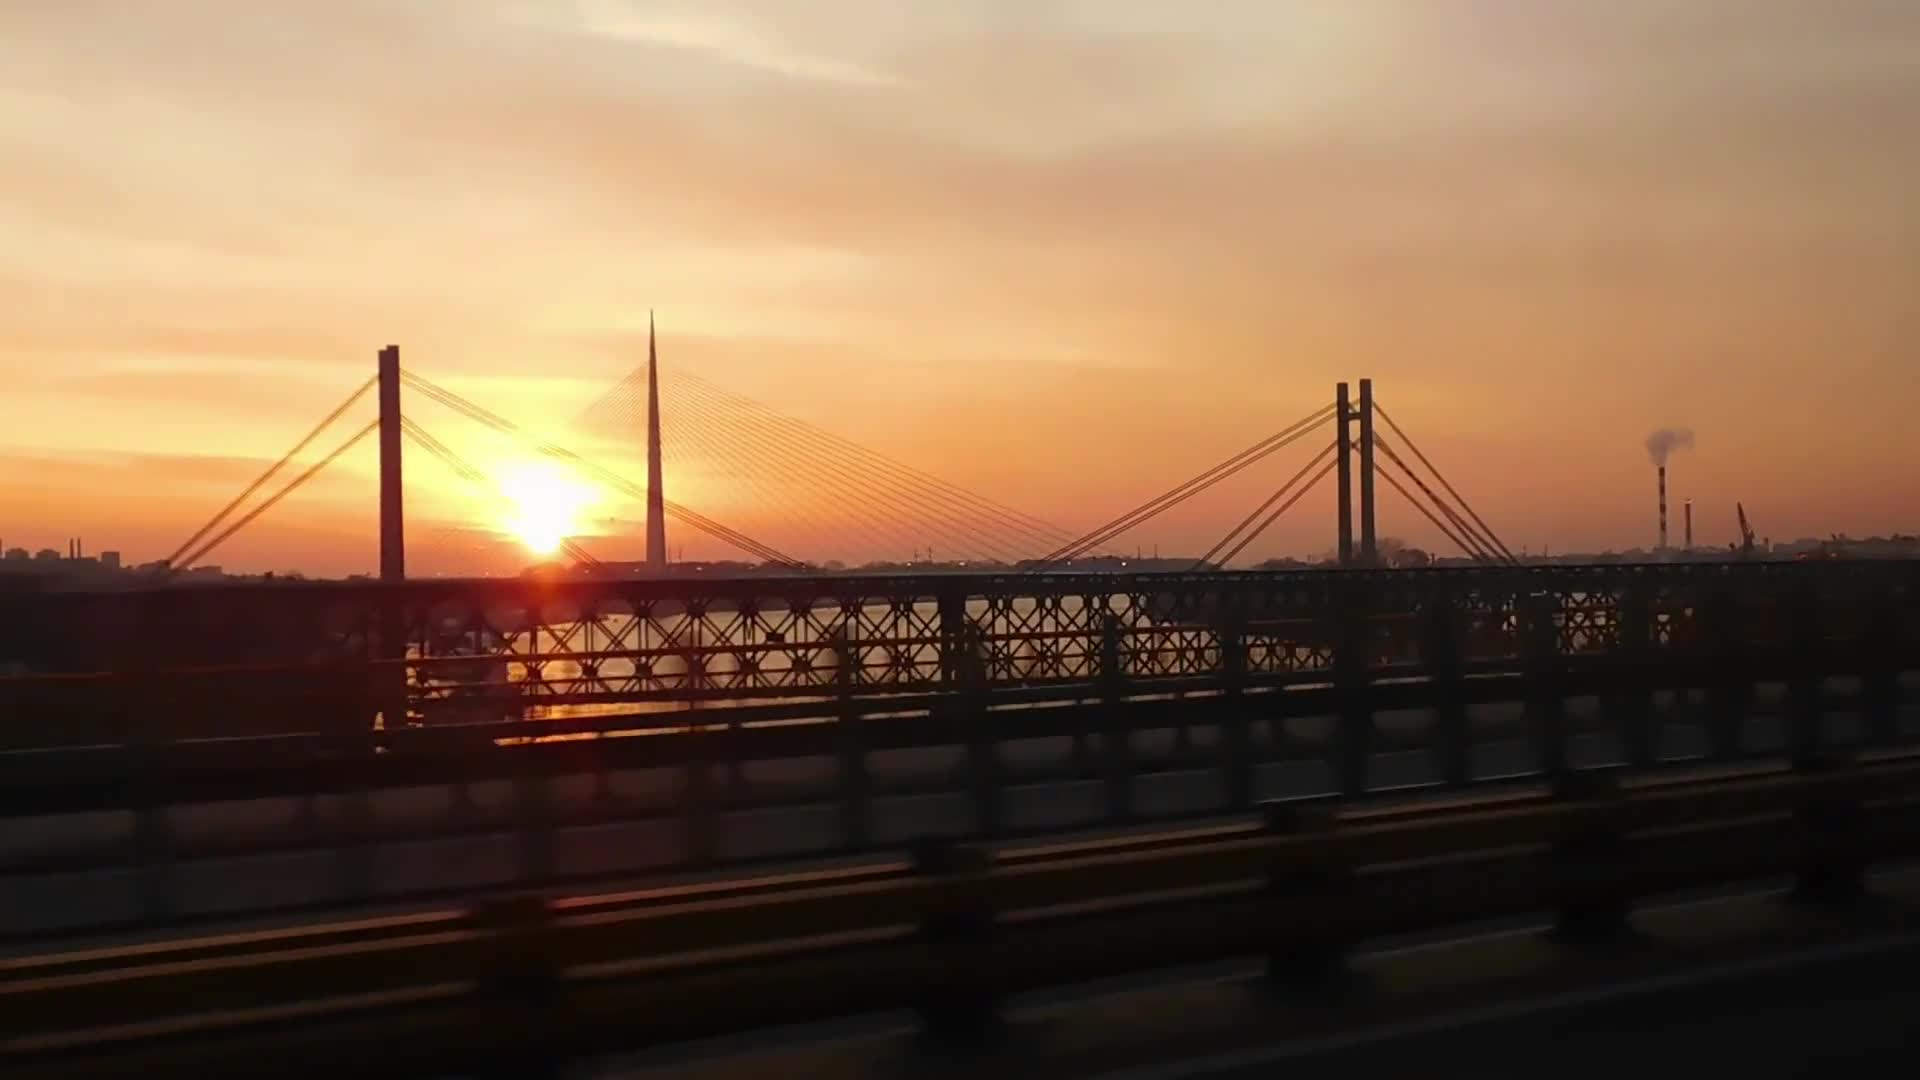 Driving over a bridge during sunset